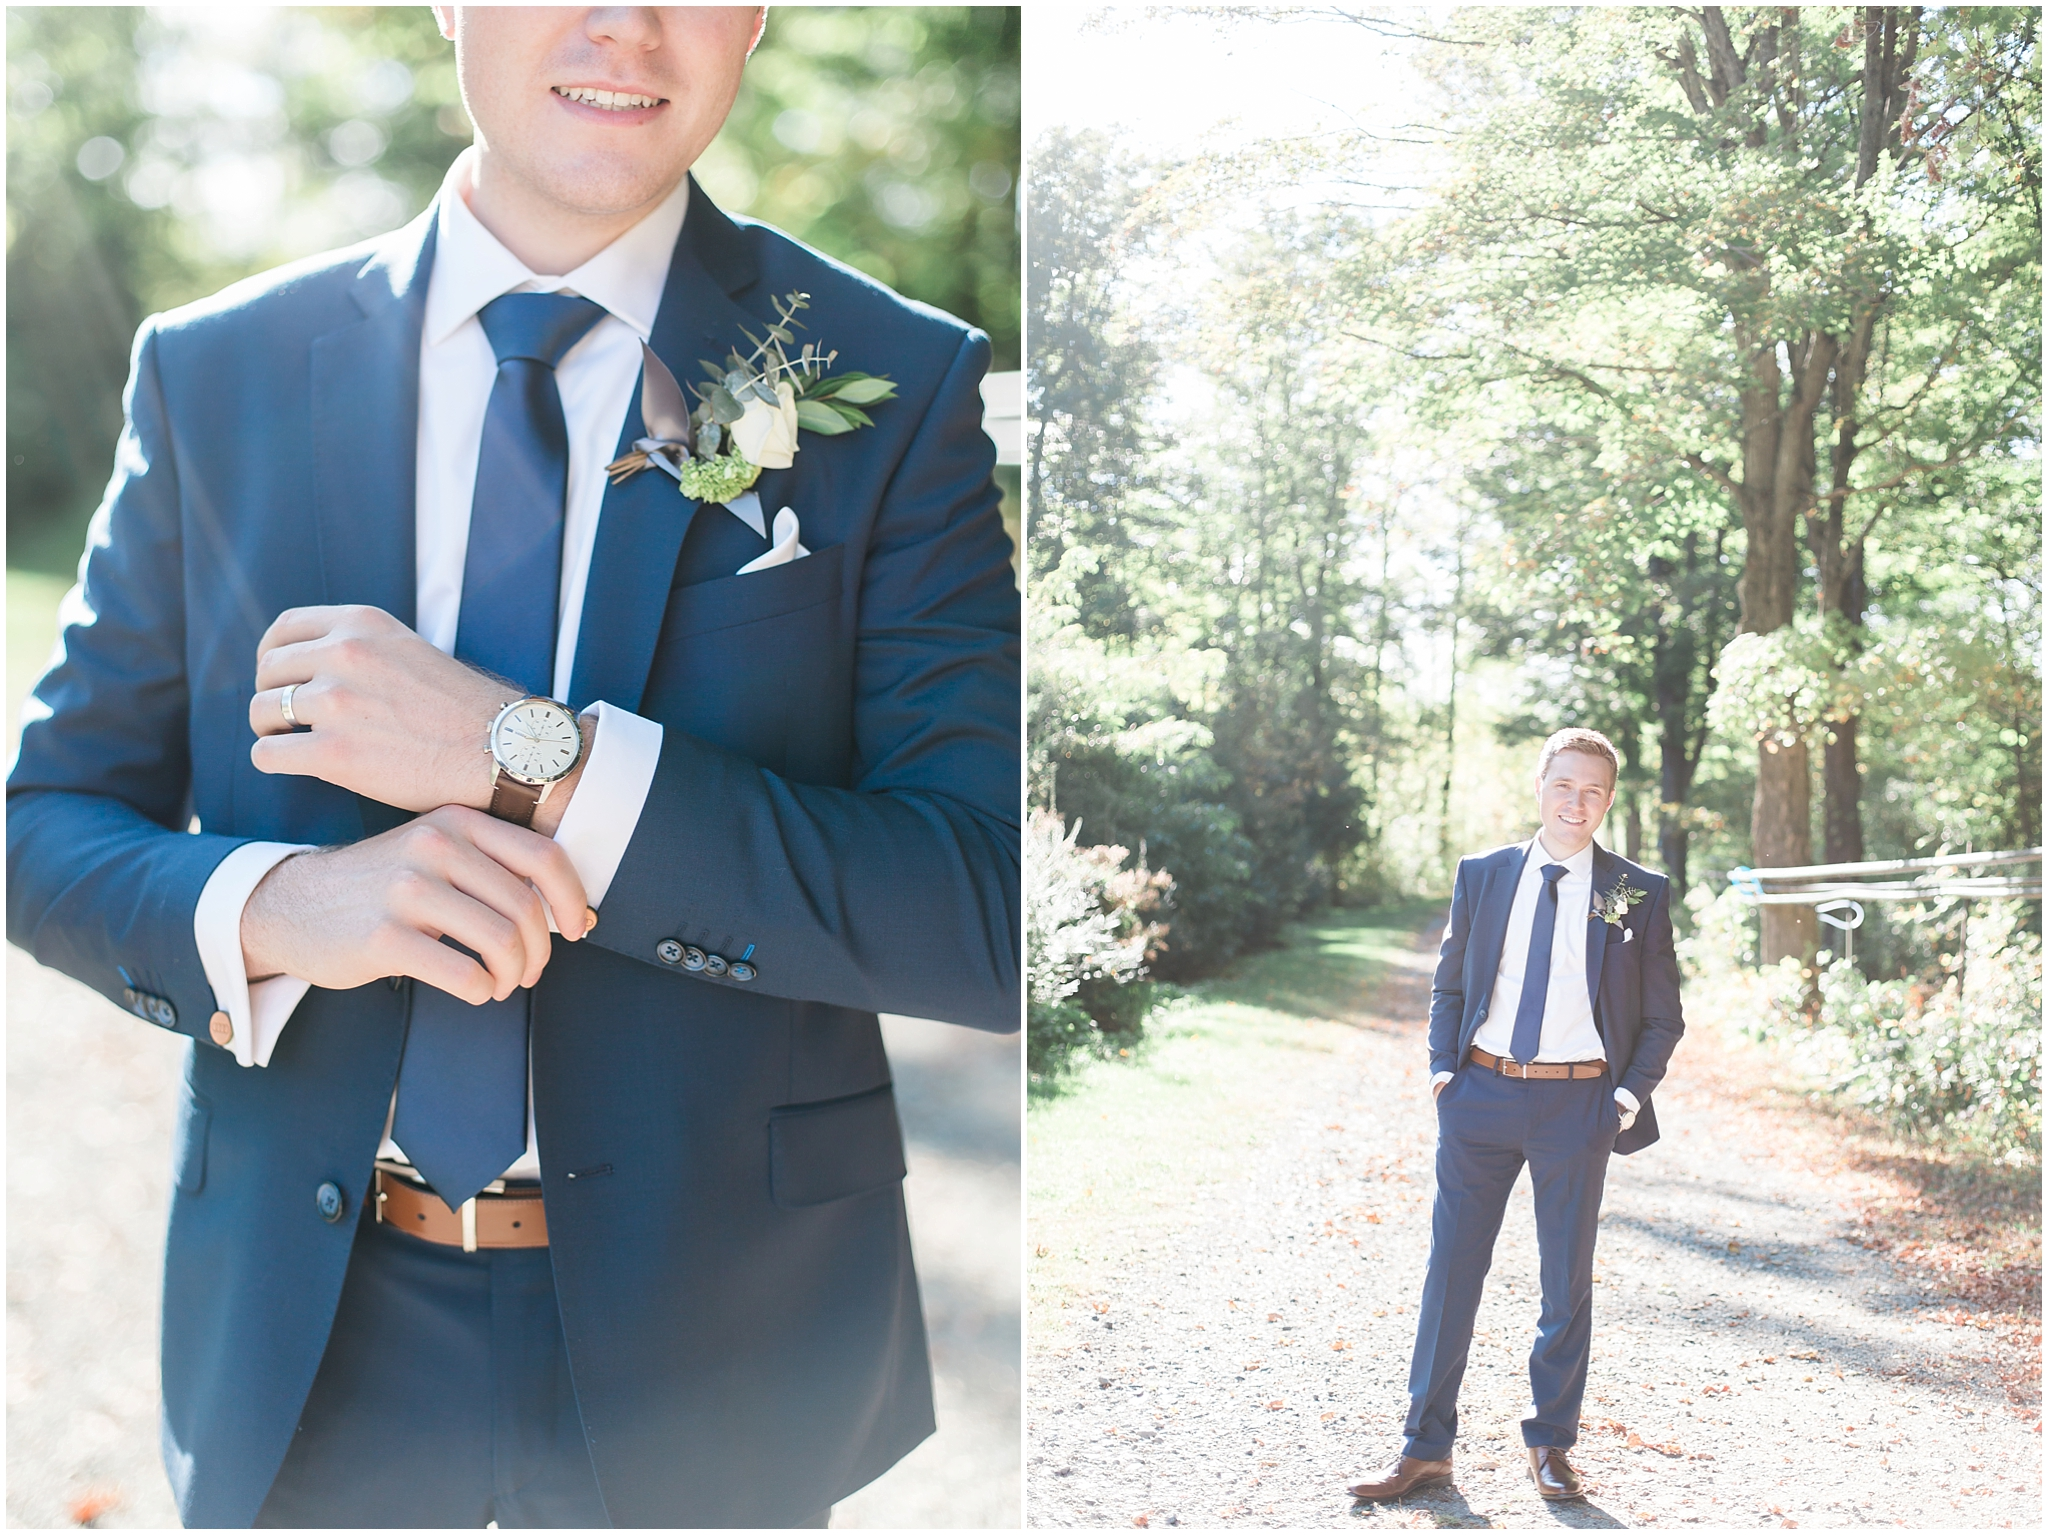 Ottawa groom at temples sugar bush wedding venue in a jimmy the suit guy suit